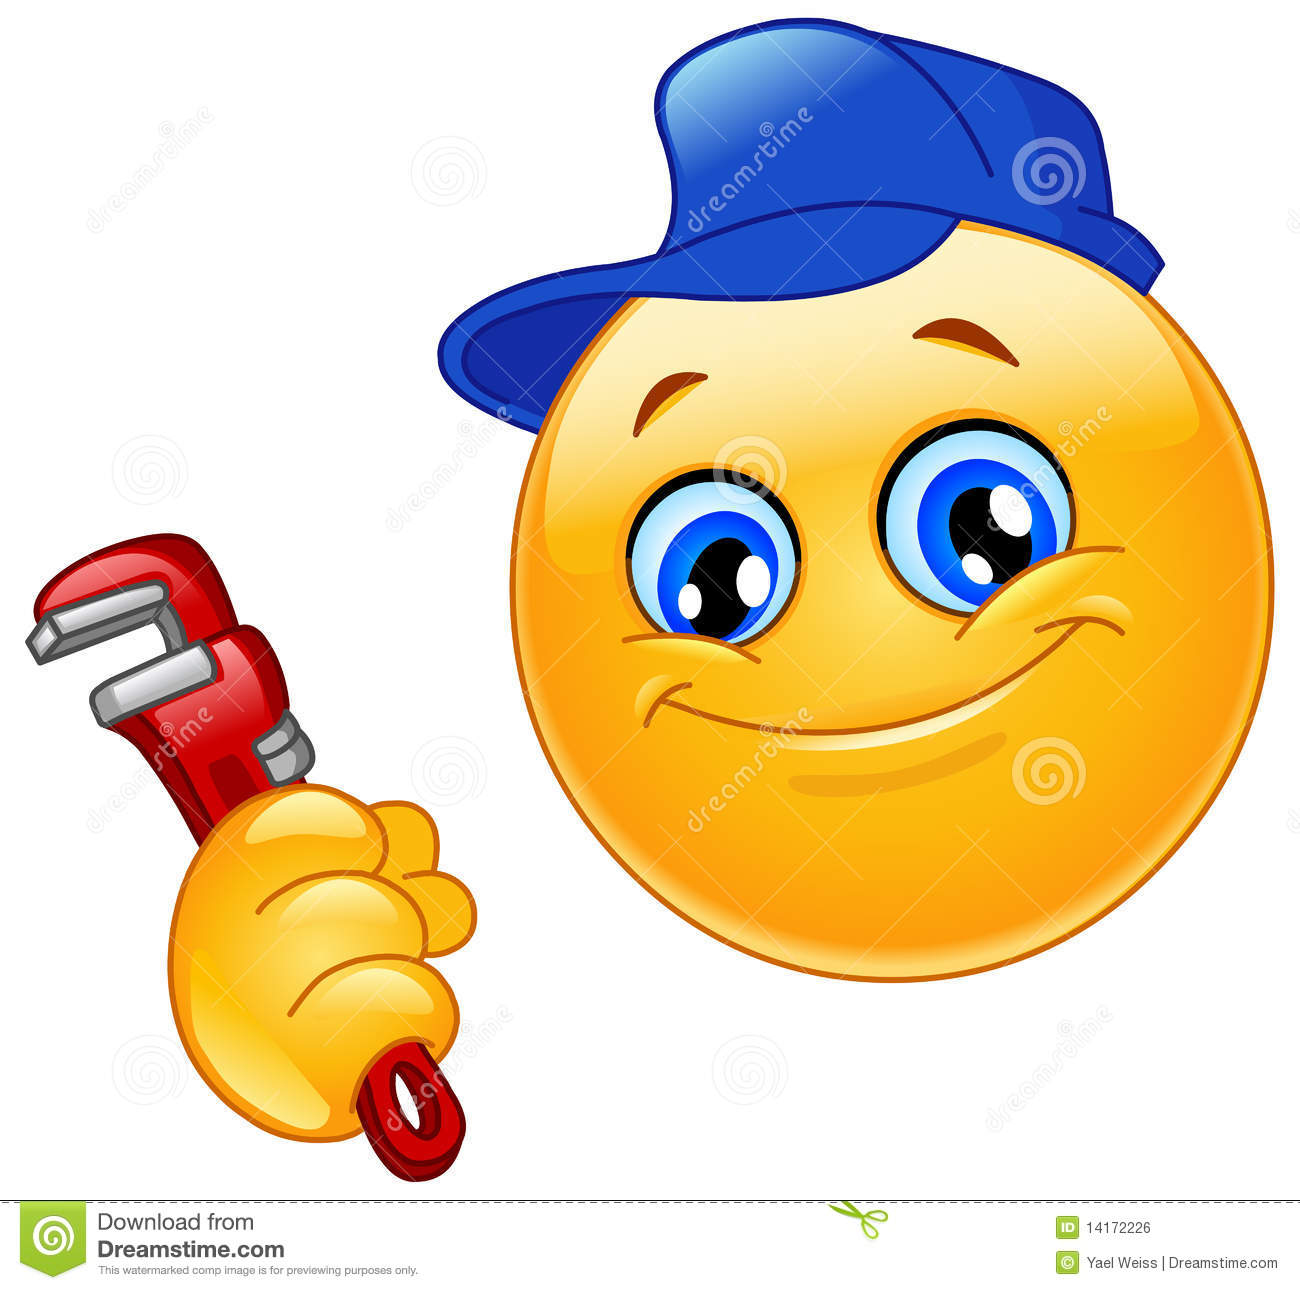 Plumber Emoticon Stock Vector Illustration Of Hand Icon